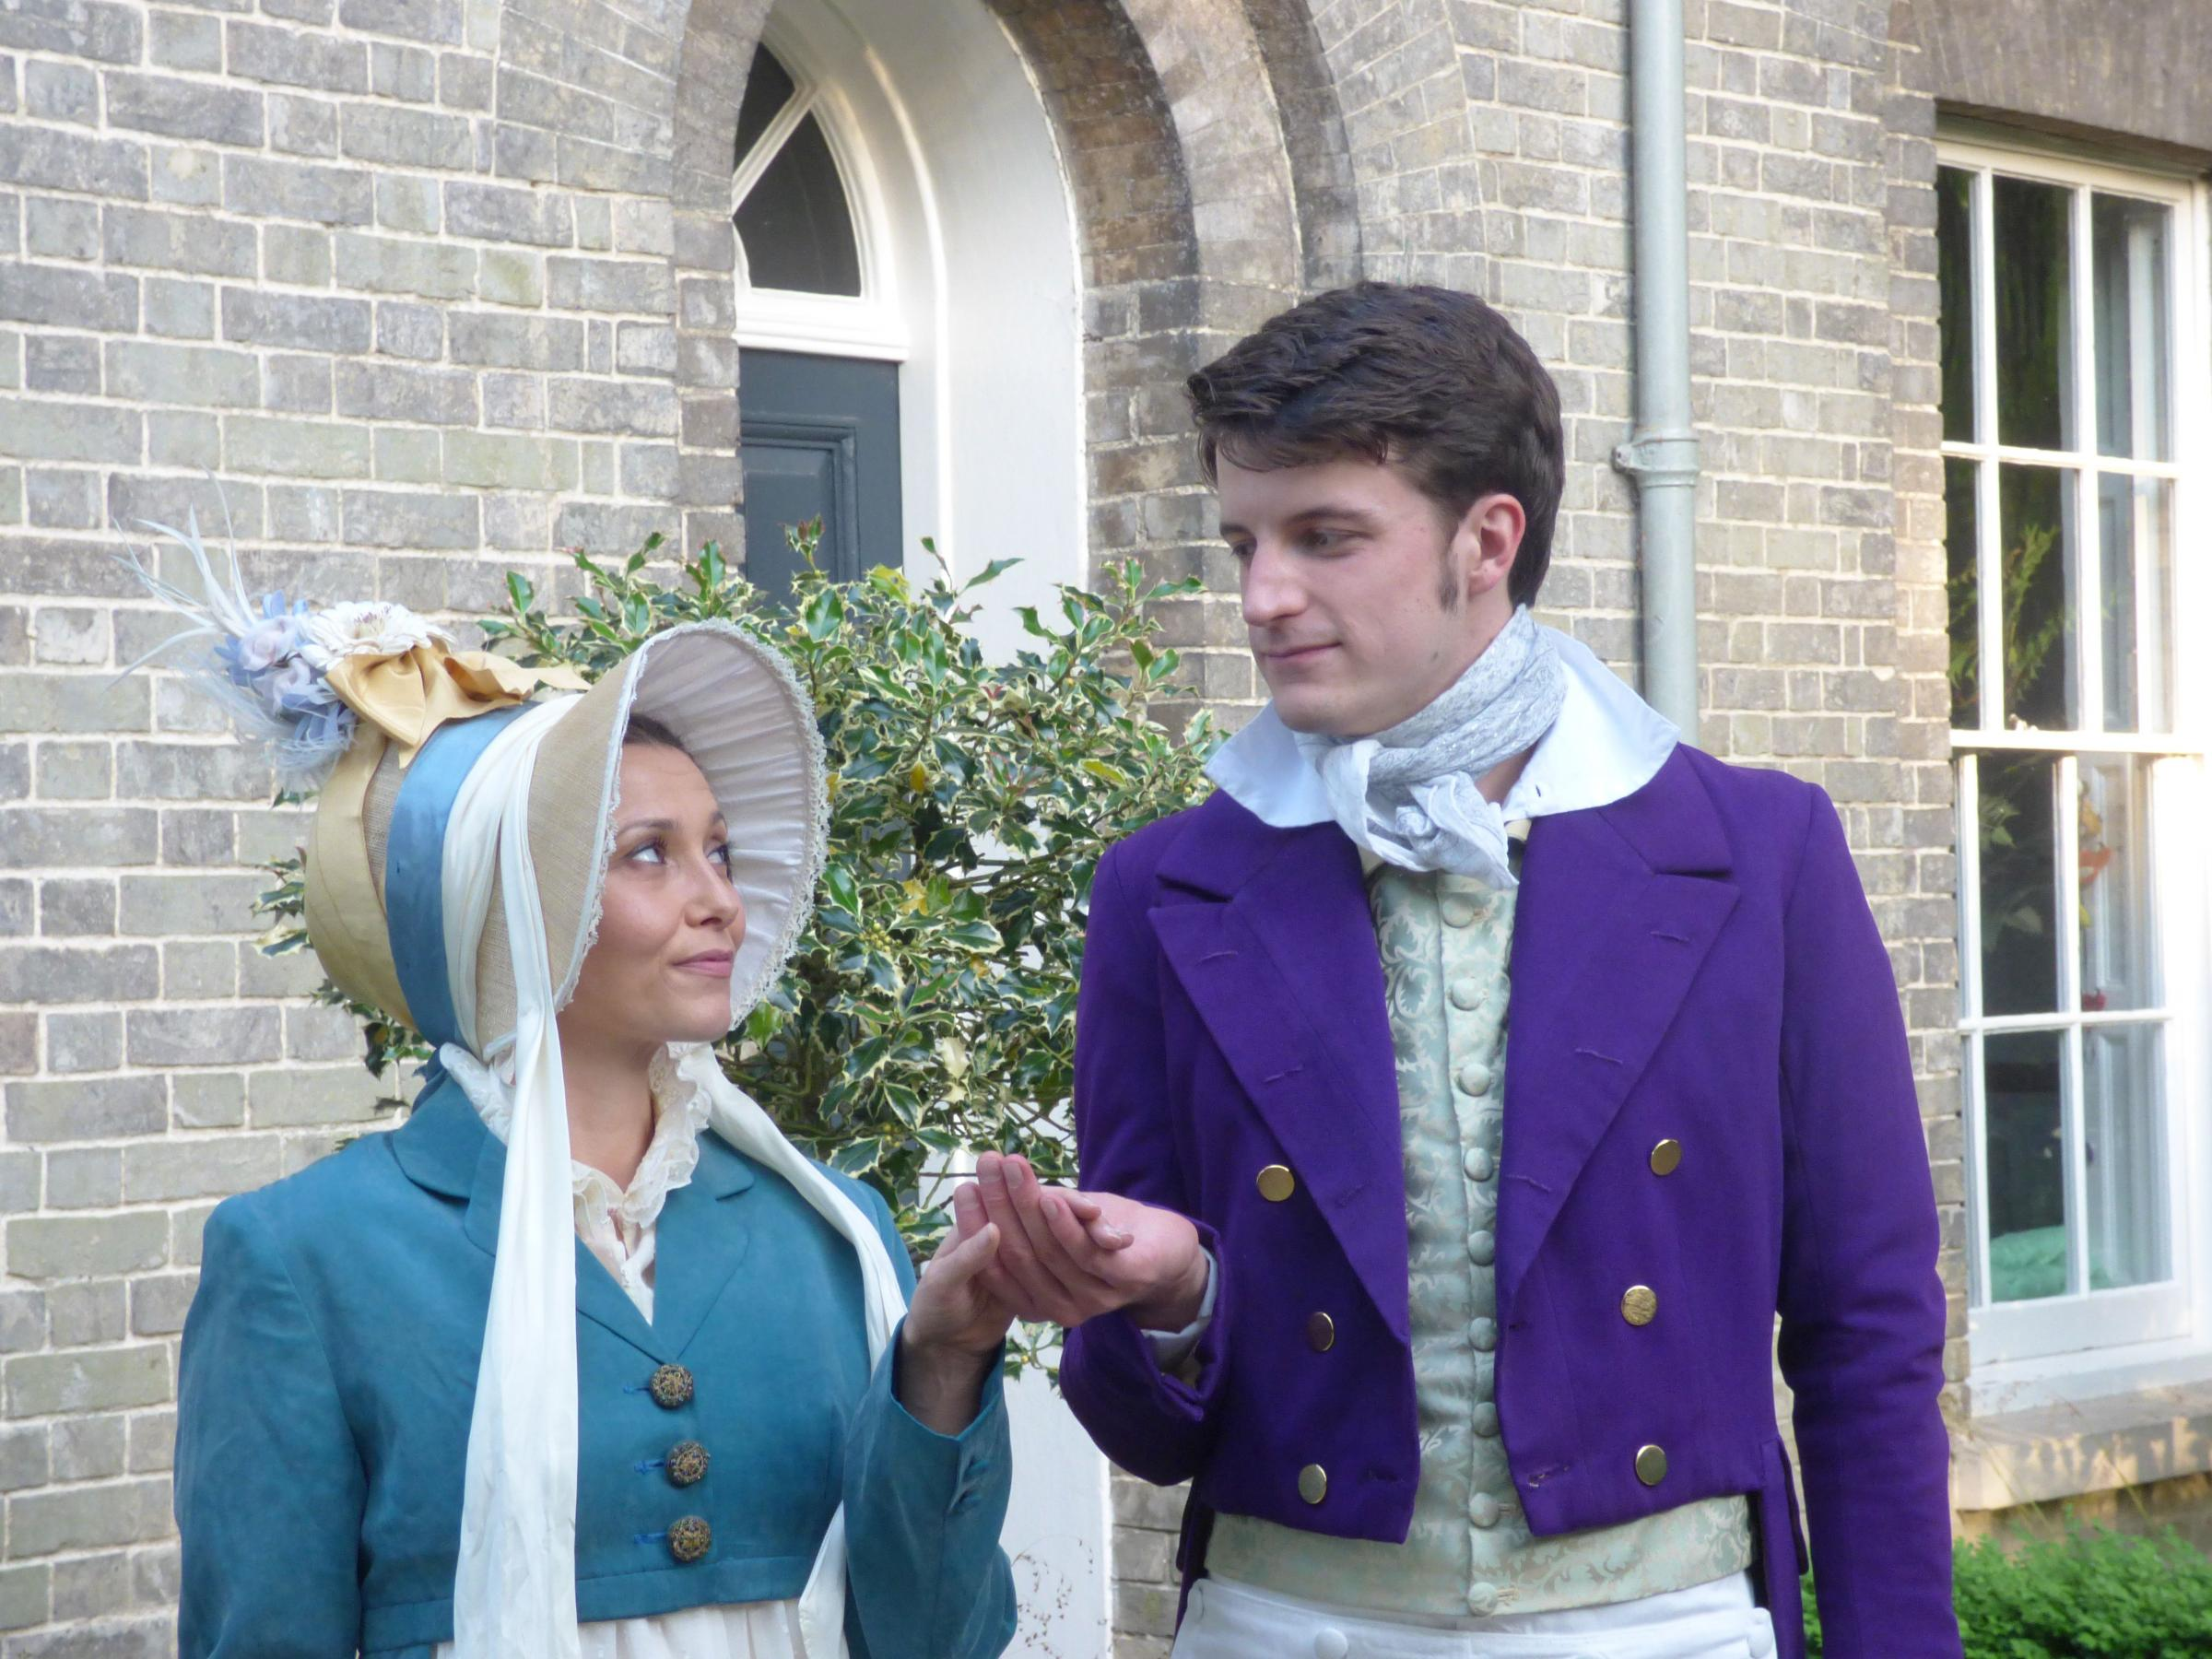 World premiere for play on teen Austen's work